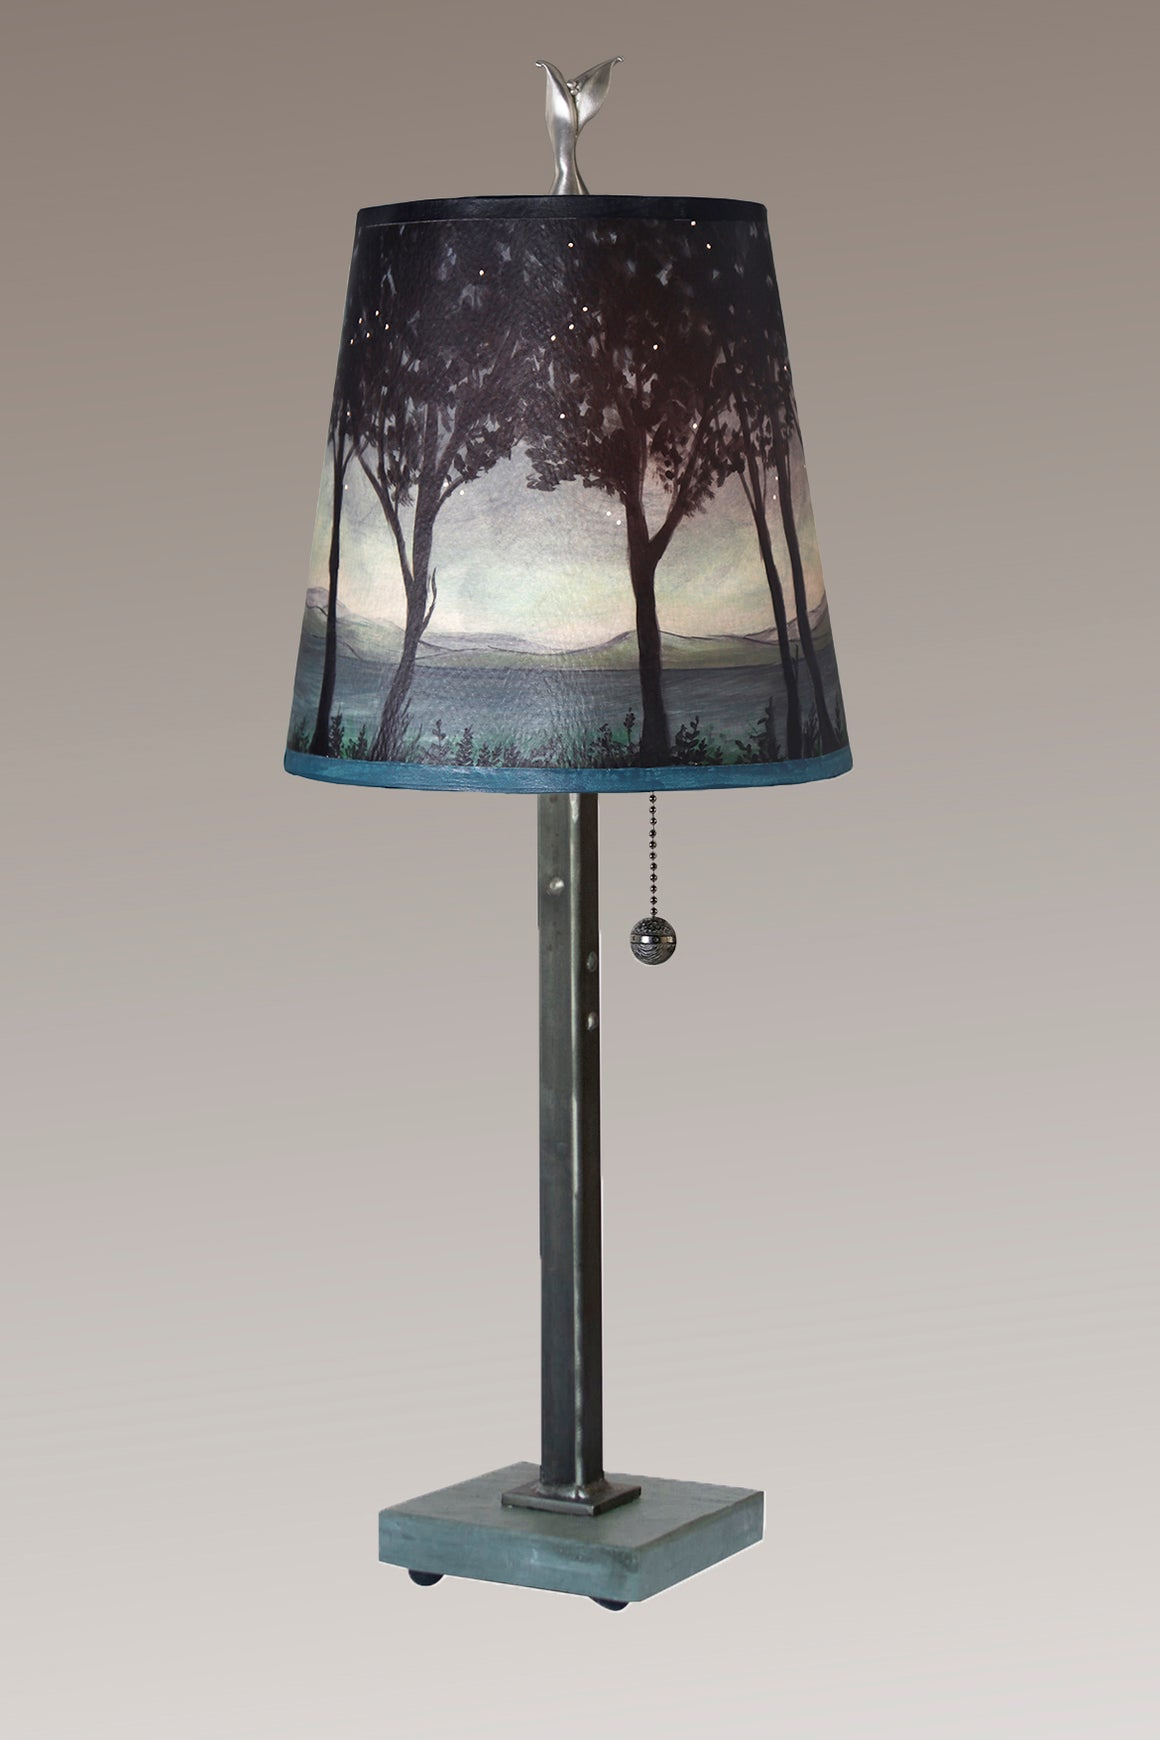 Steel Table Lamp on Vermont Slate Base with Small Drum Shade in Twilight